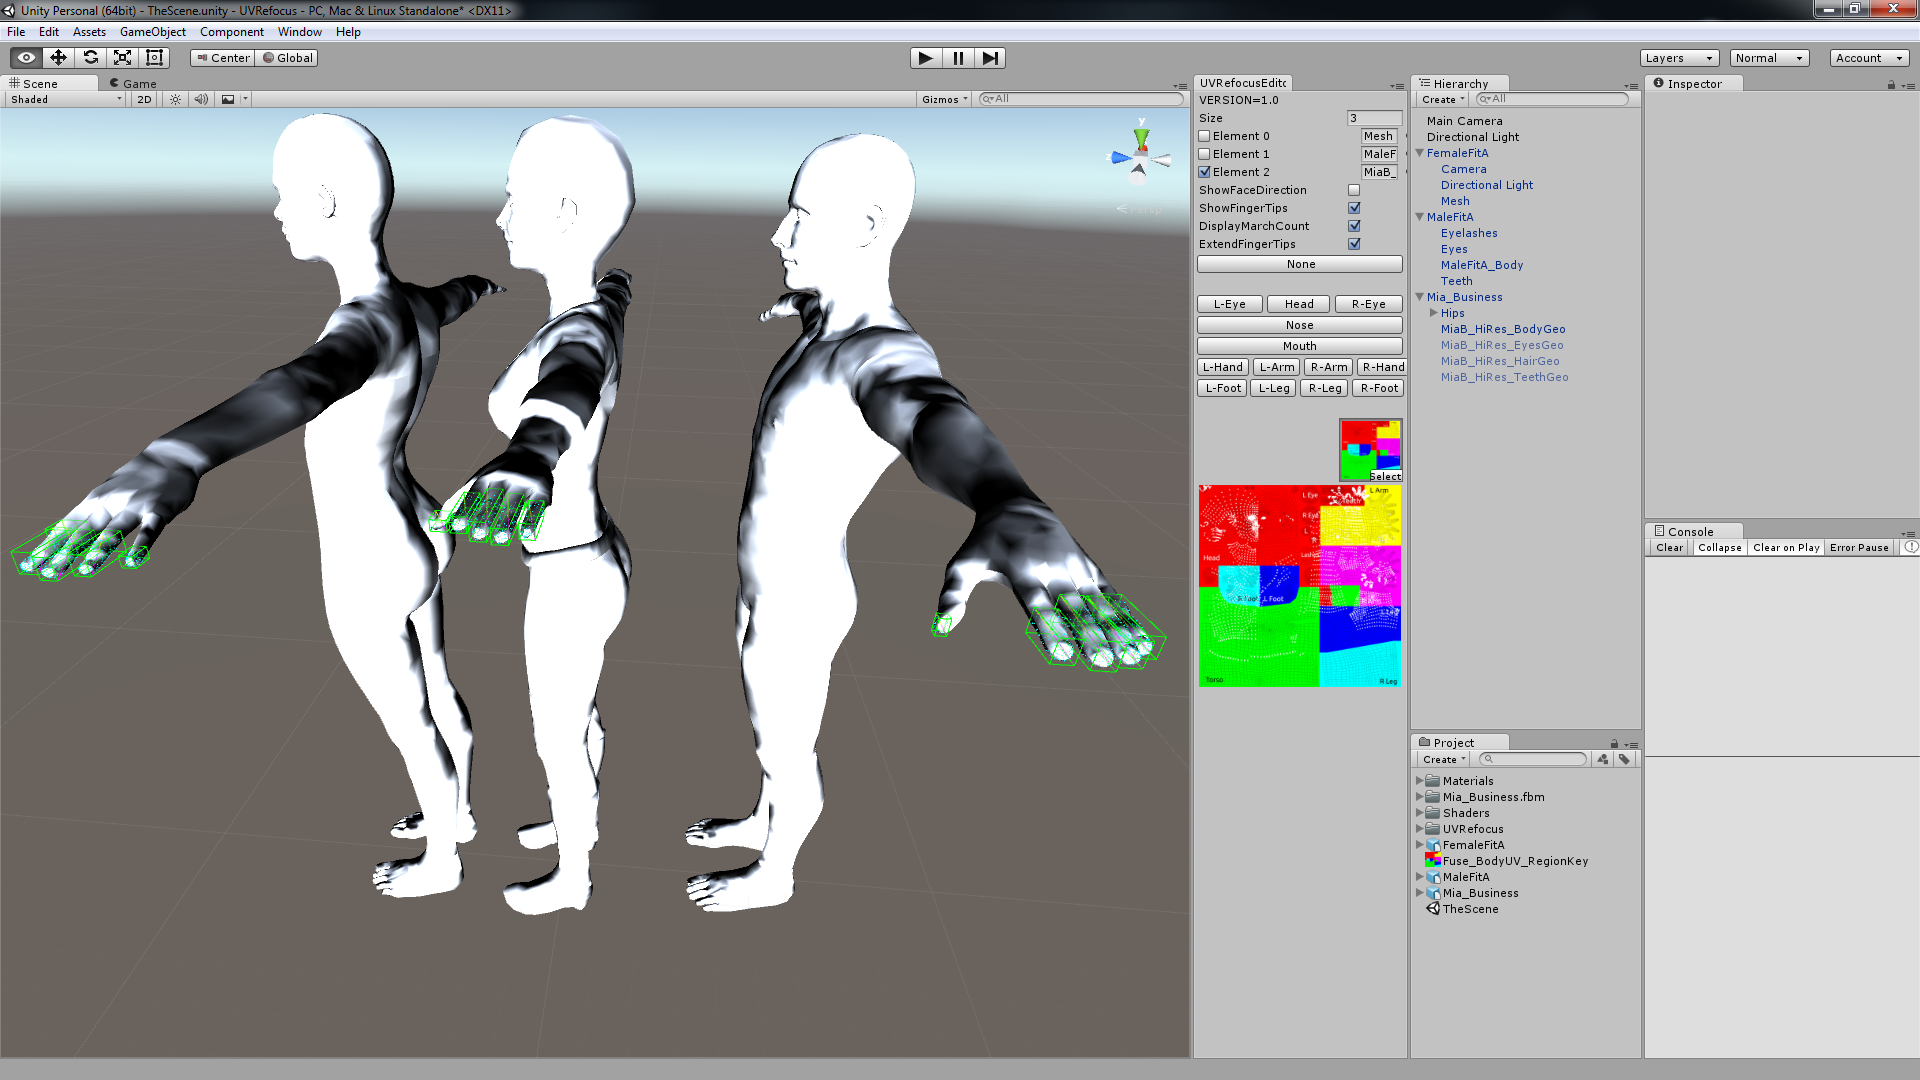 Preparing UVs for Mixamo FUSE + (Mixamo Content and Services are